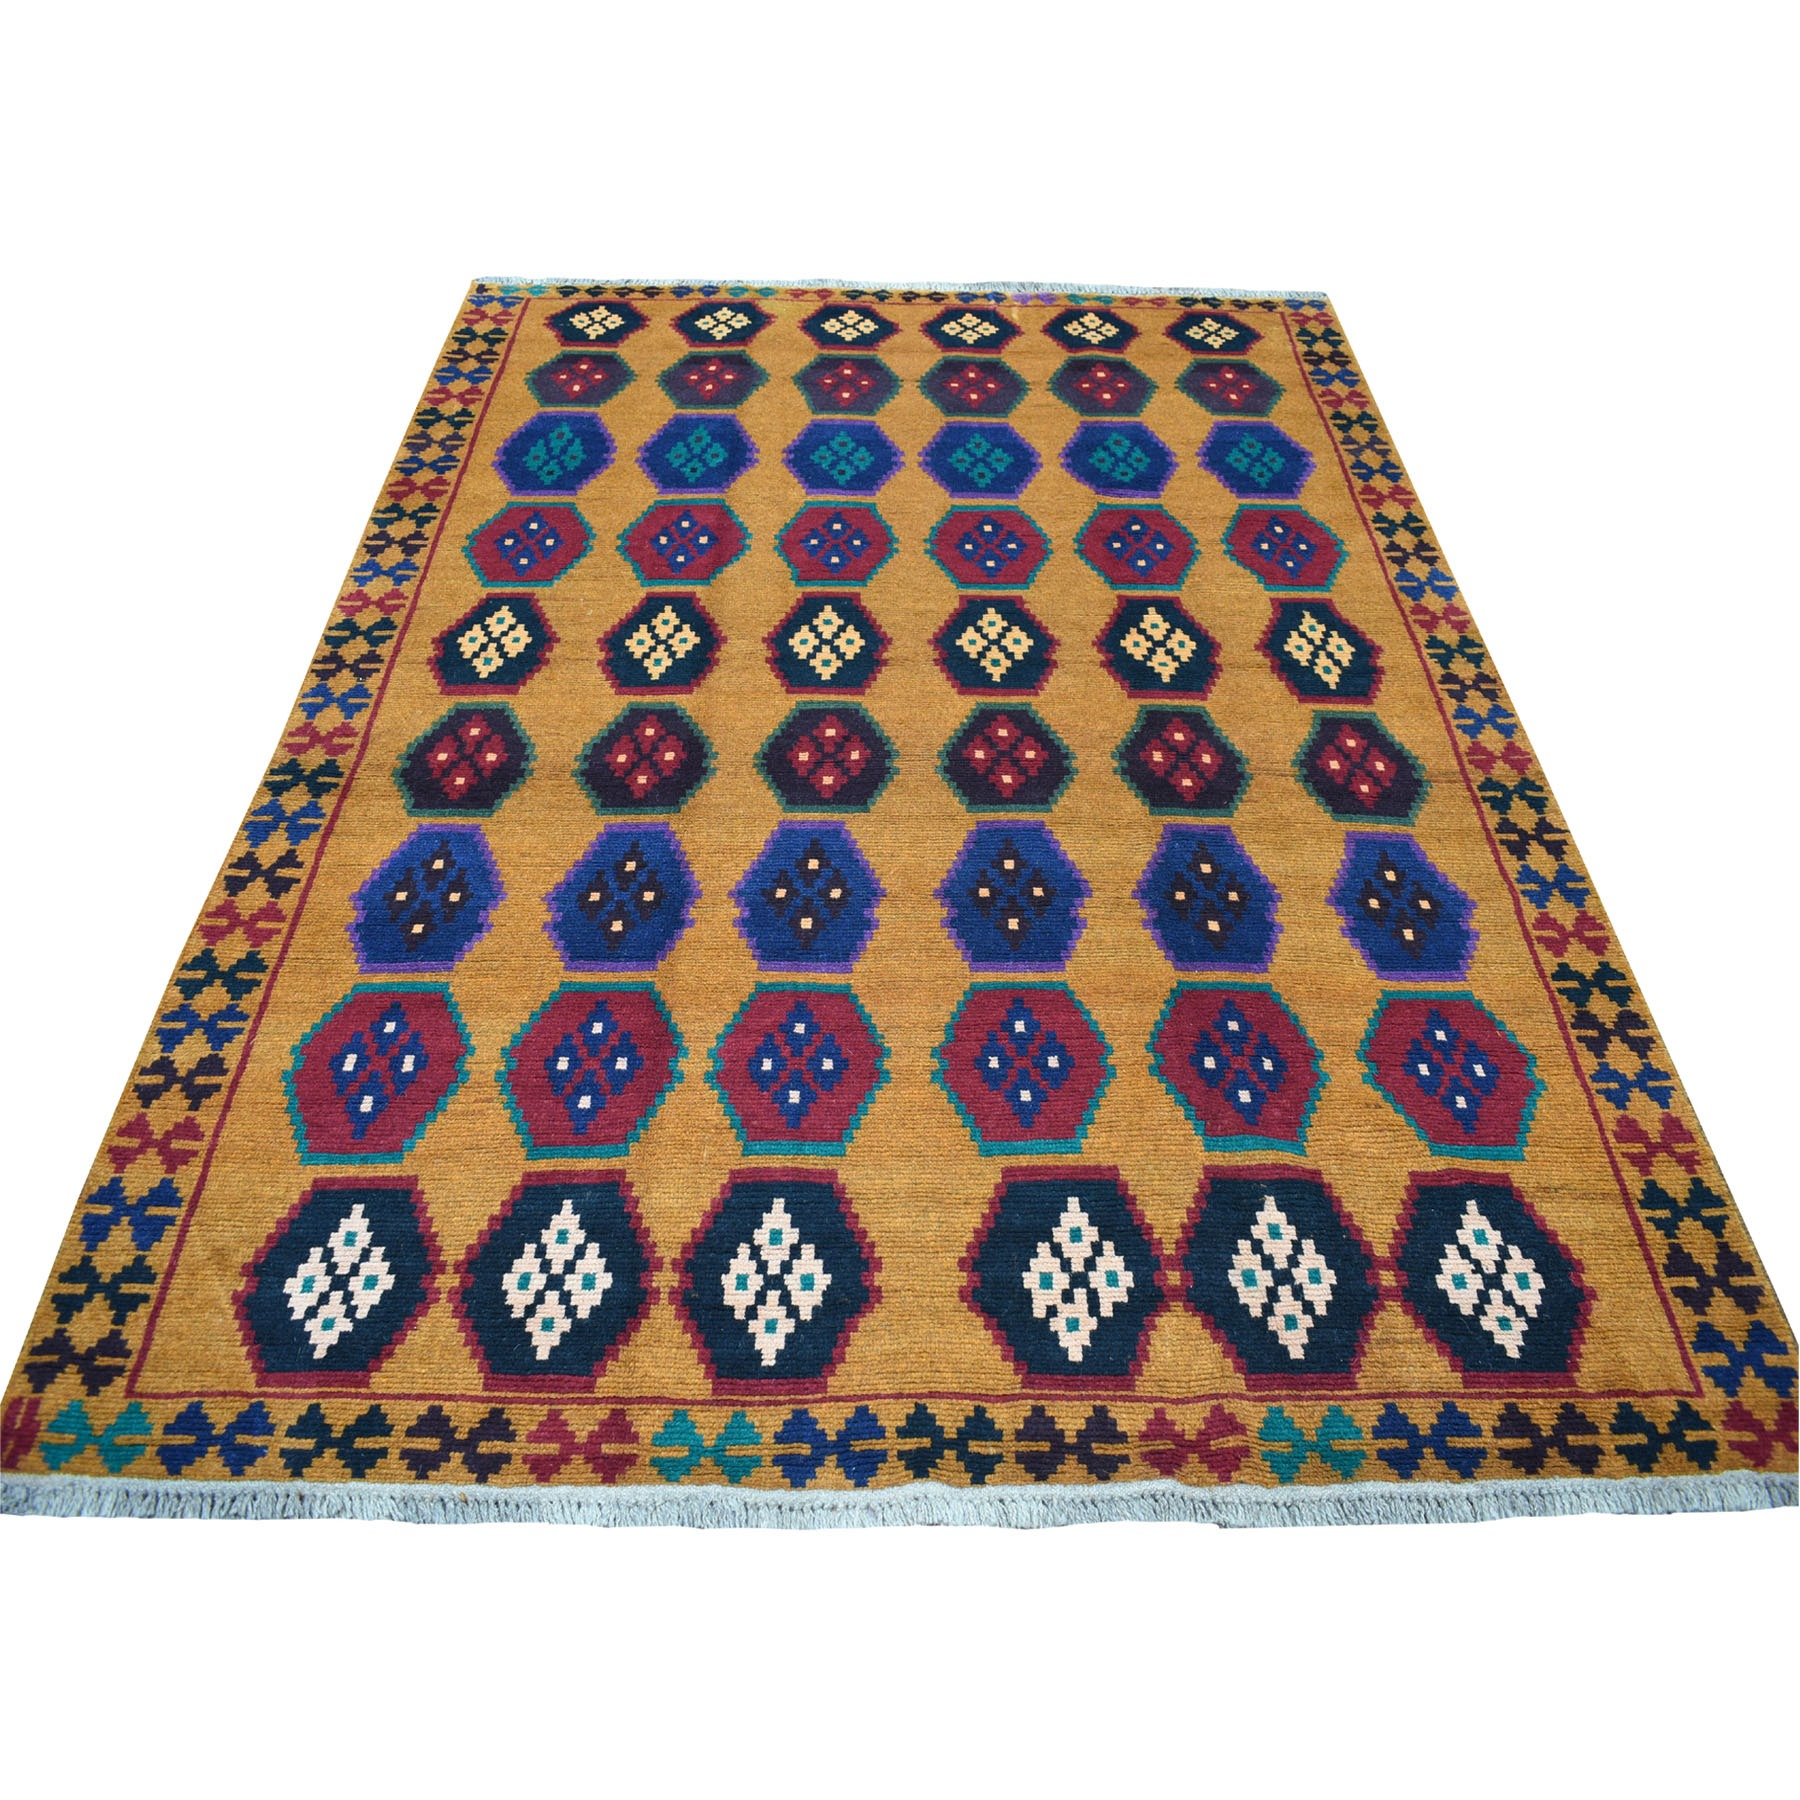 "6'x7'10"" Orange Geometric Design Colorful Afghan Baluch Hand Woven Pure Wool Oriental Rug"